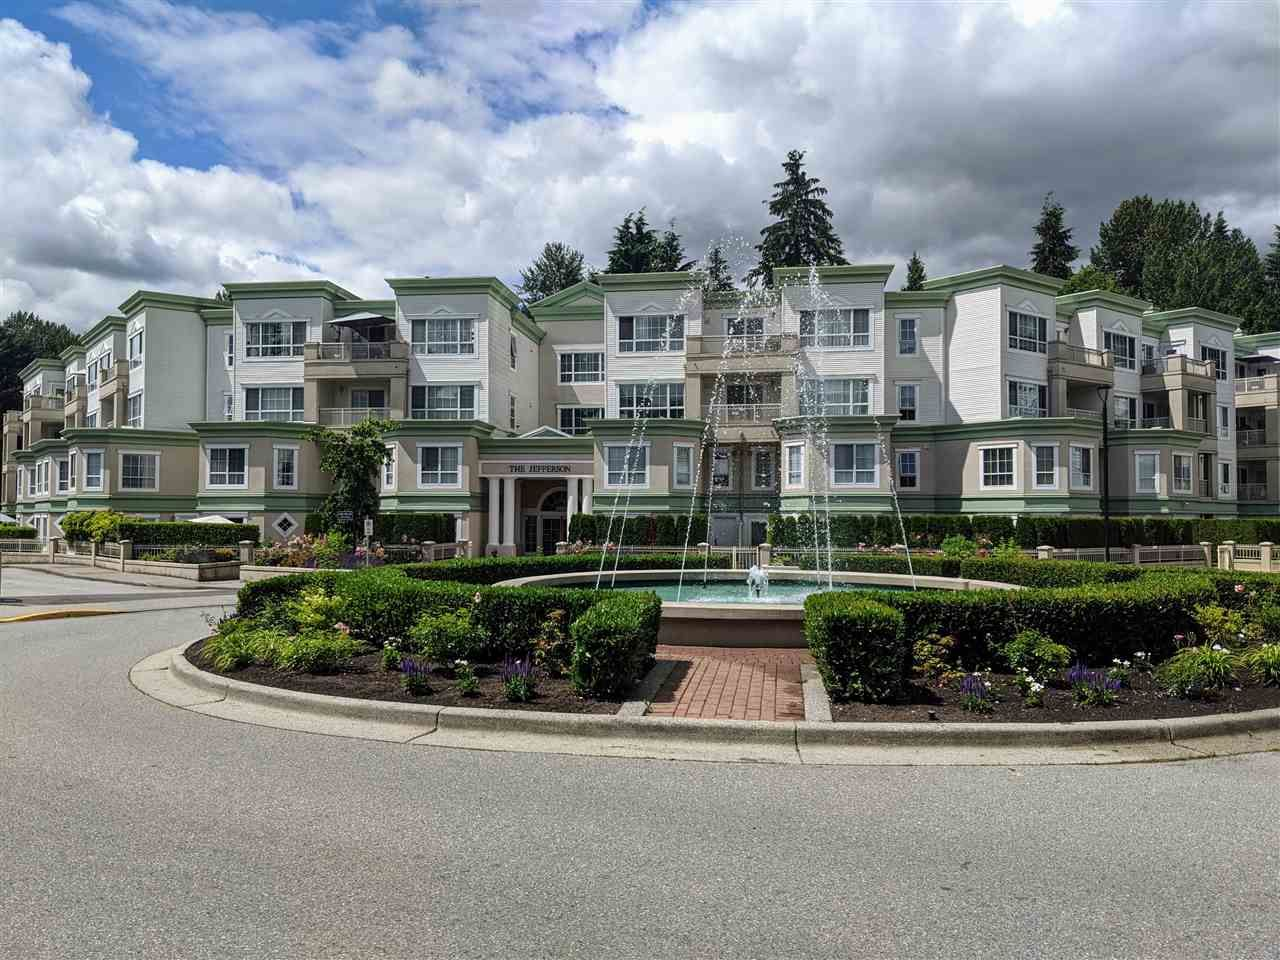 Main Photo: 101 2960 PRINCESS CRESCENT in Coquitlam: Canyon Springs Condo for sale : MLS®# R2474240